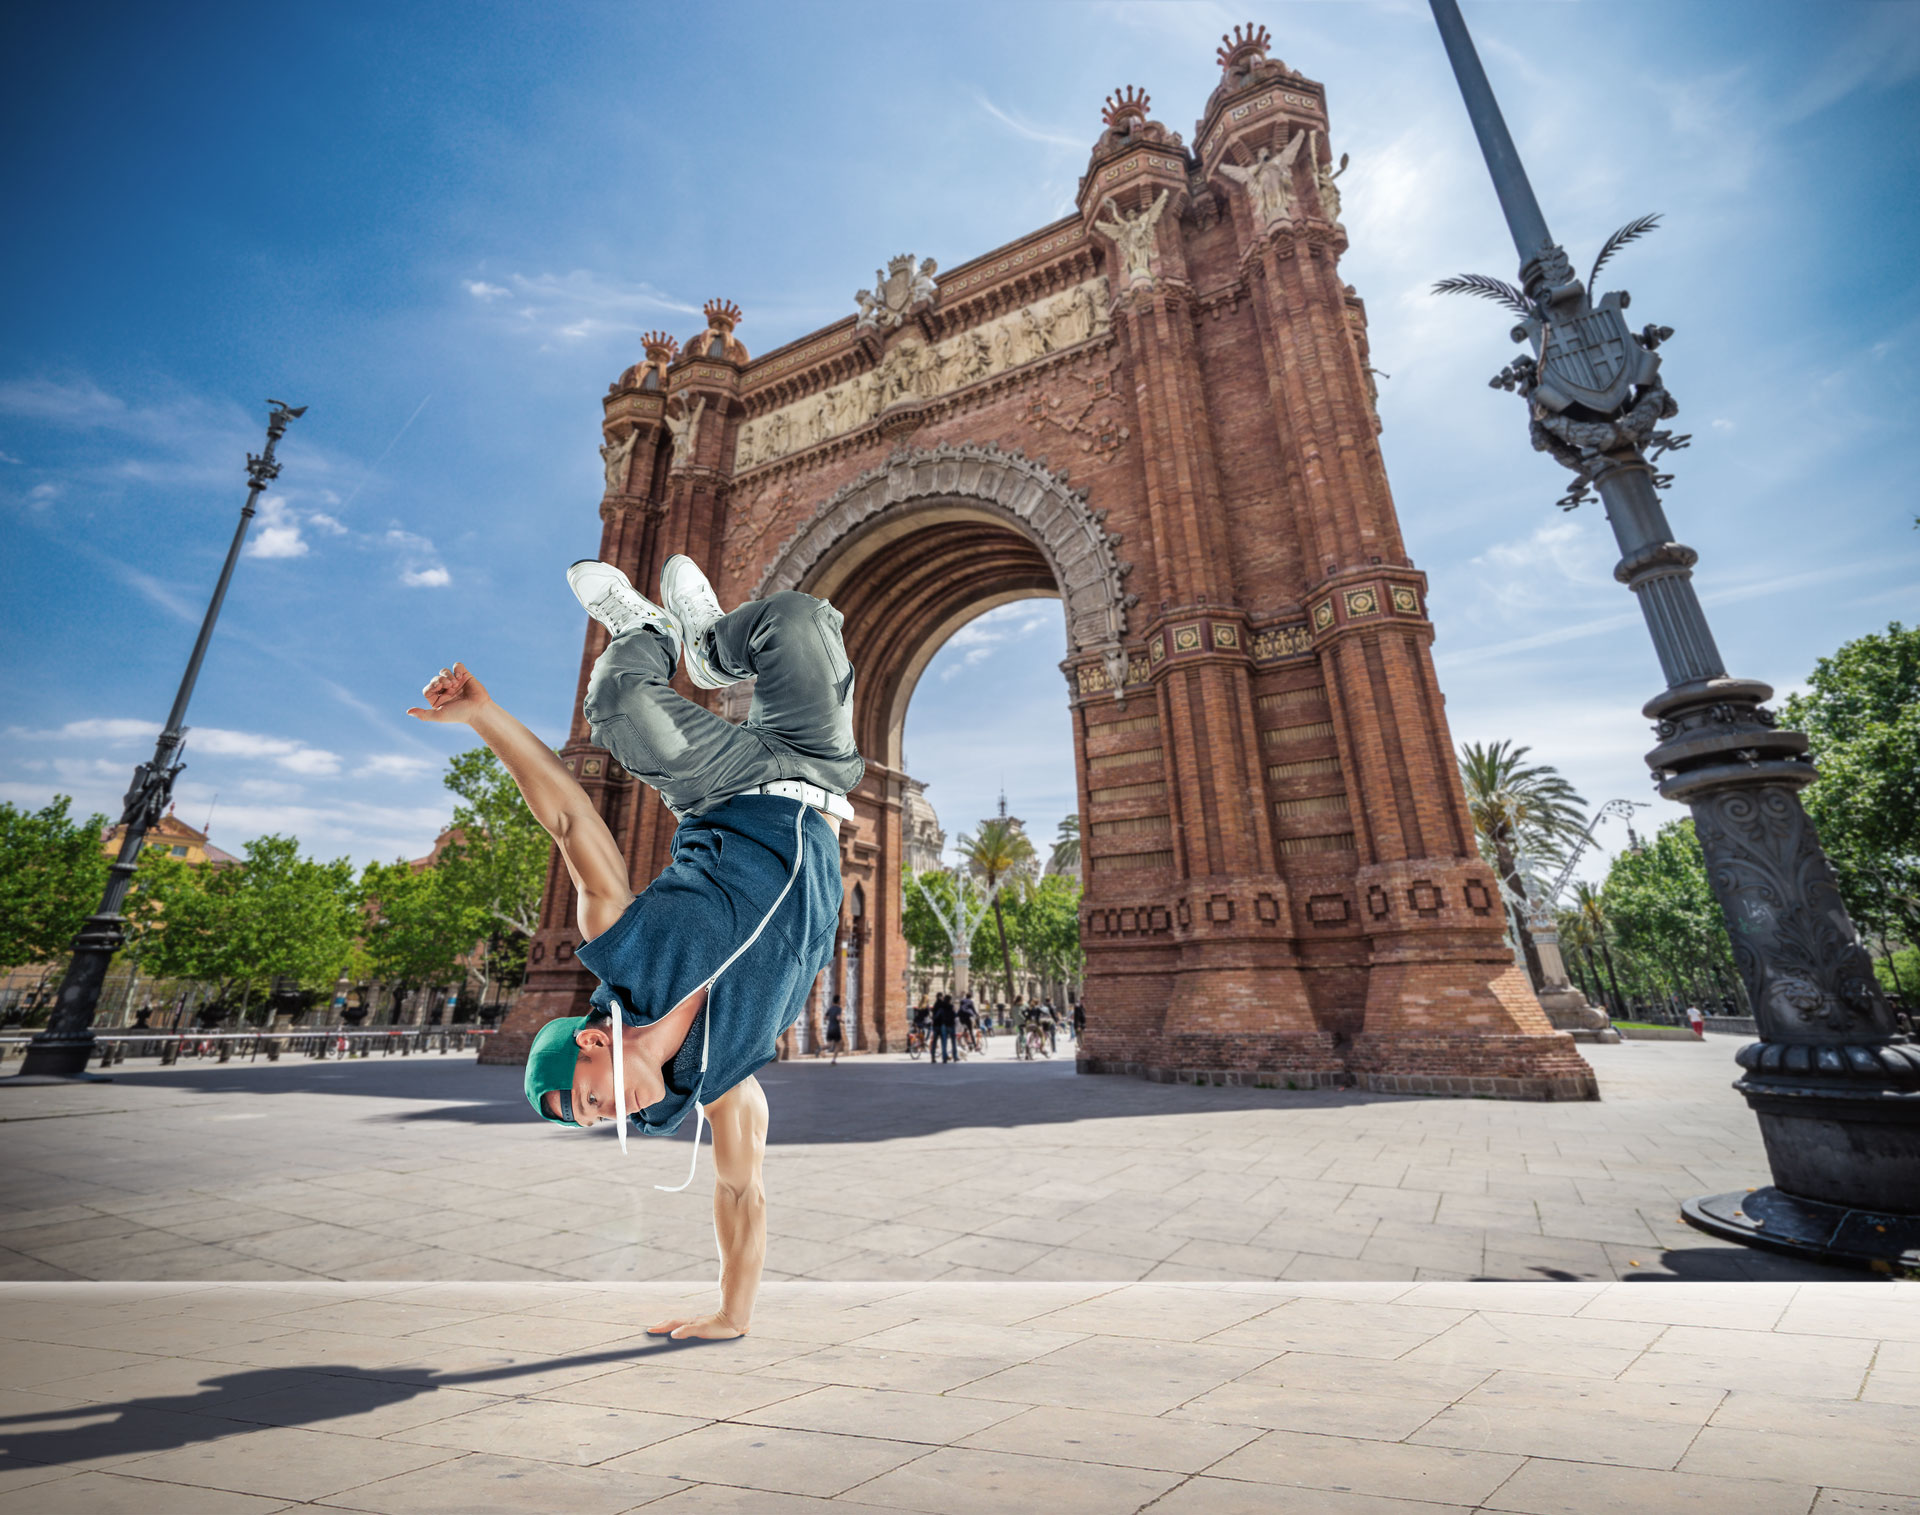 Break dancer Arc de Triomf